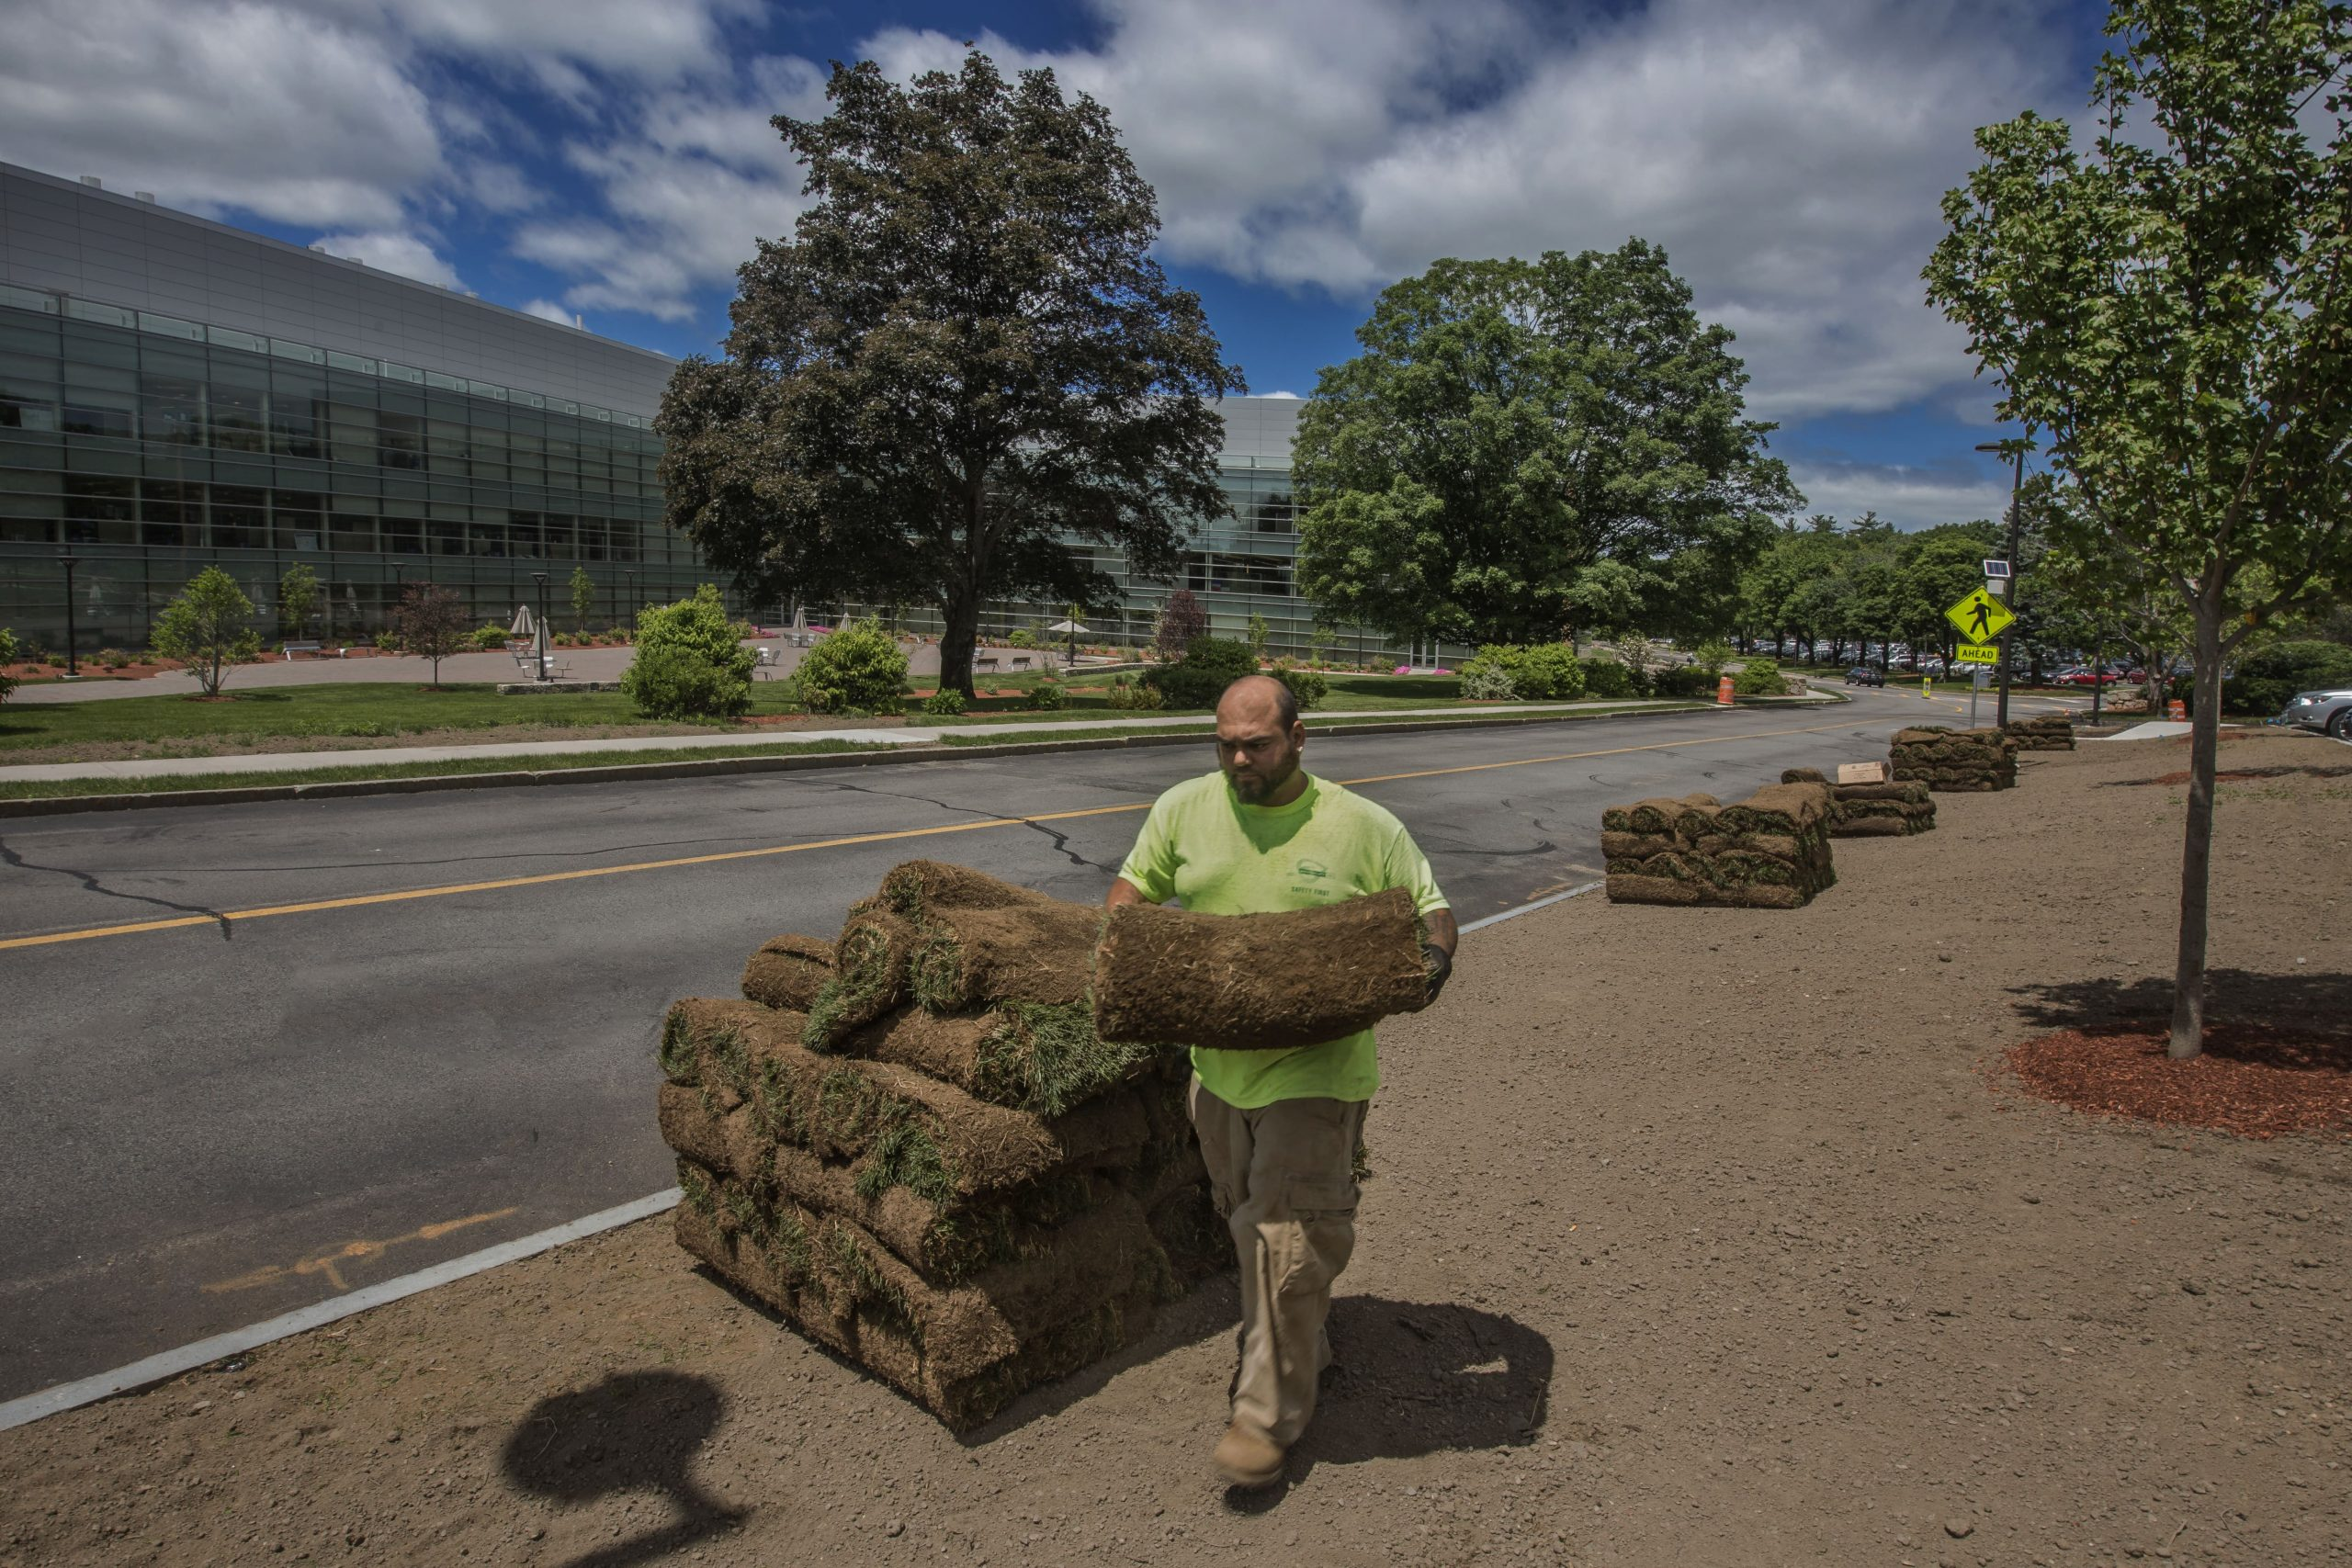 Piles of sod lining the street at a Greenscape job site.